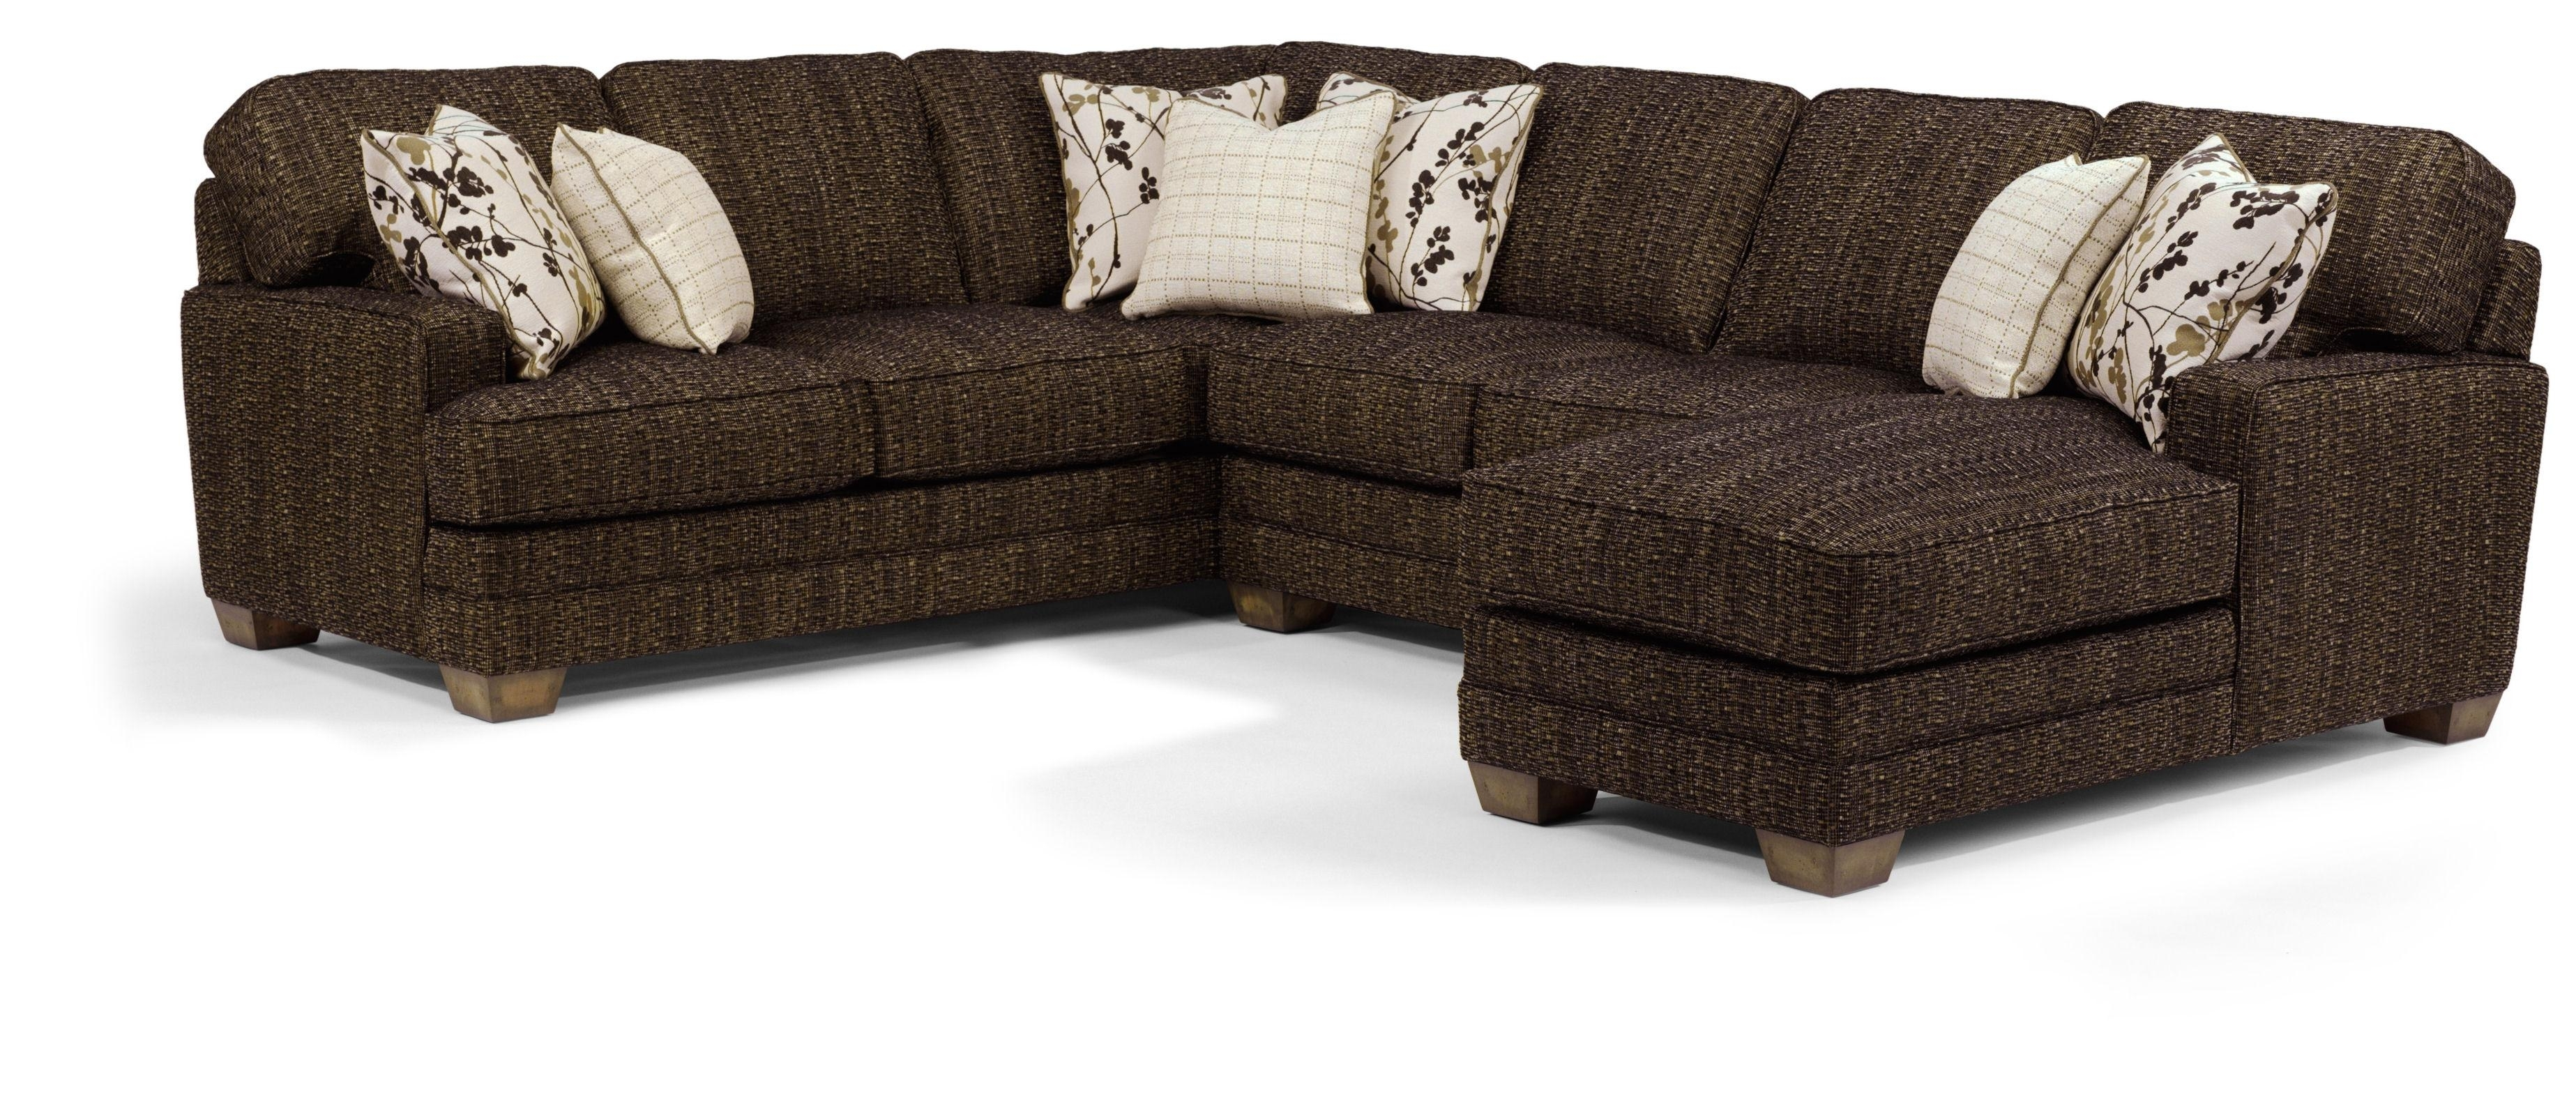 Flexsteel That's My Style <B>Customizable</b> 3 Piece Sectional Sofa For Delano 2 Piece Sectionals With Laf Oversized Chaise (Image 15 of 25)